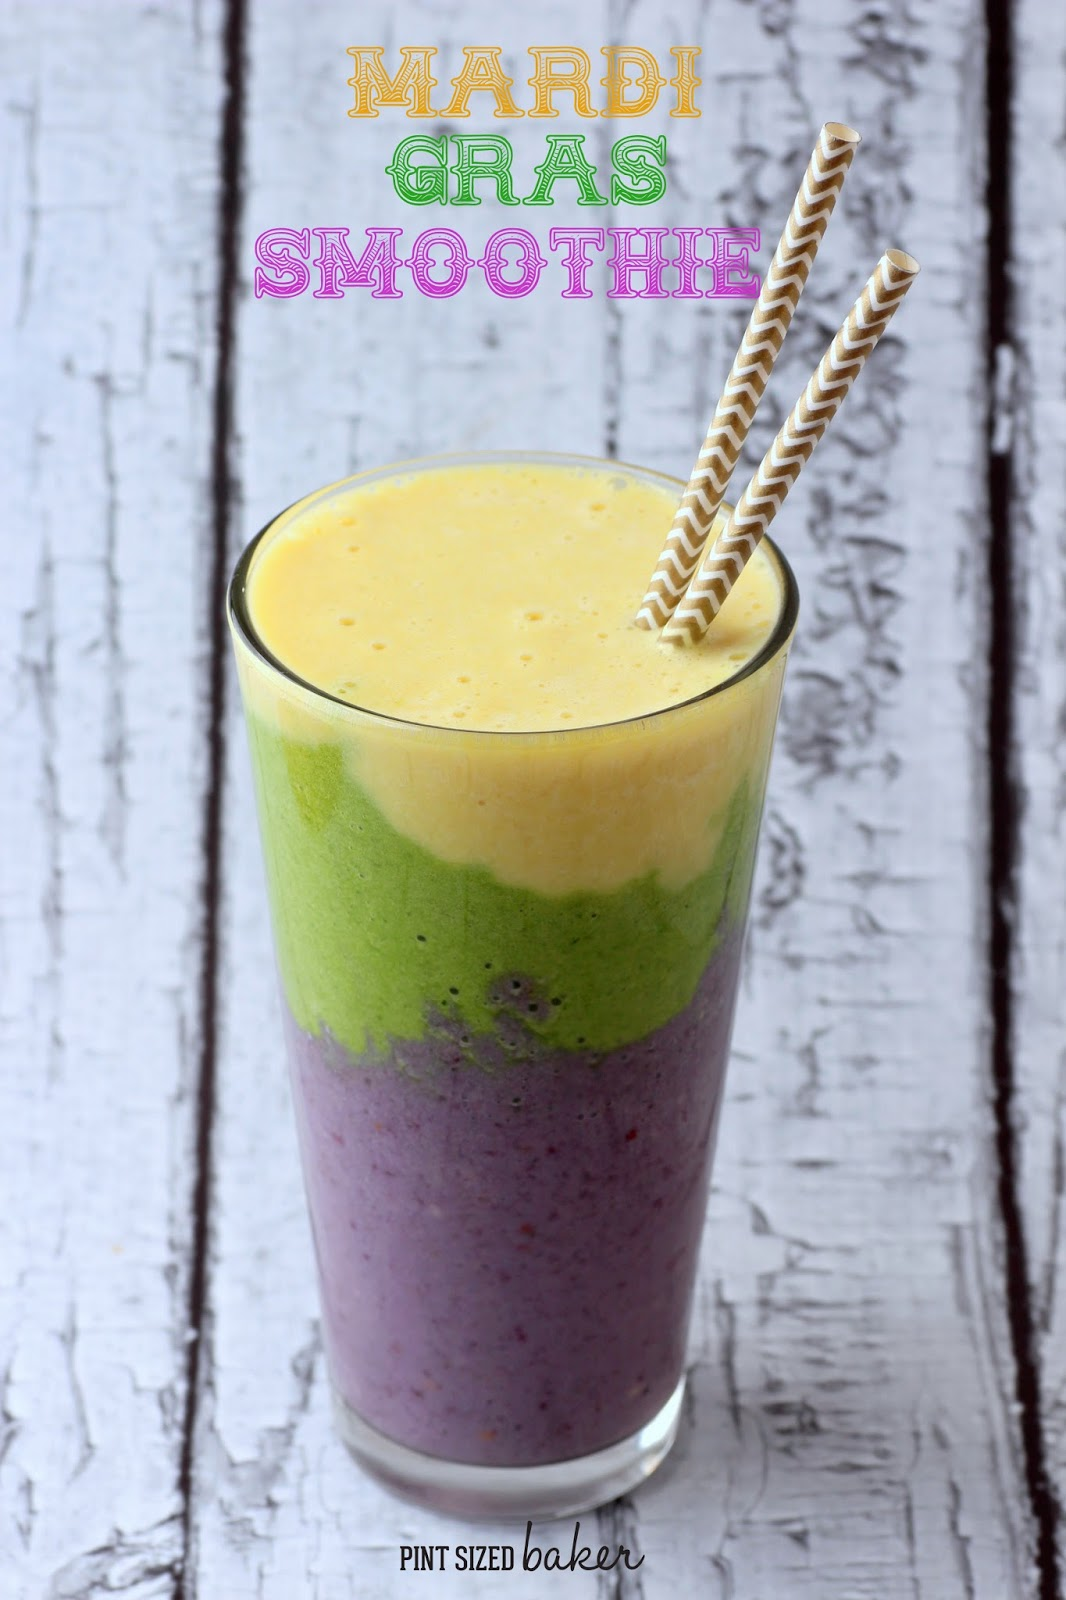 Multi-layered smoothie made for Mardi Gras! It's a fun way to drink your fruits and veggies.